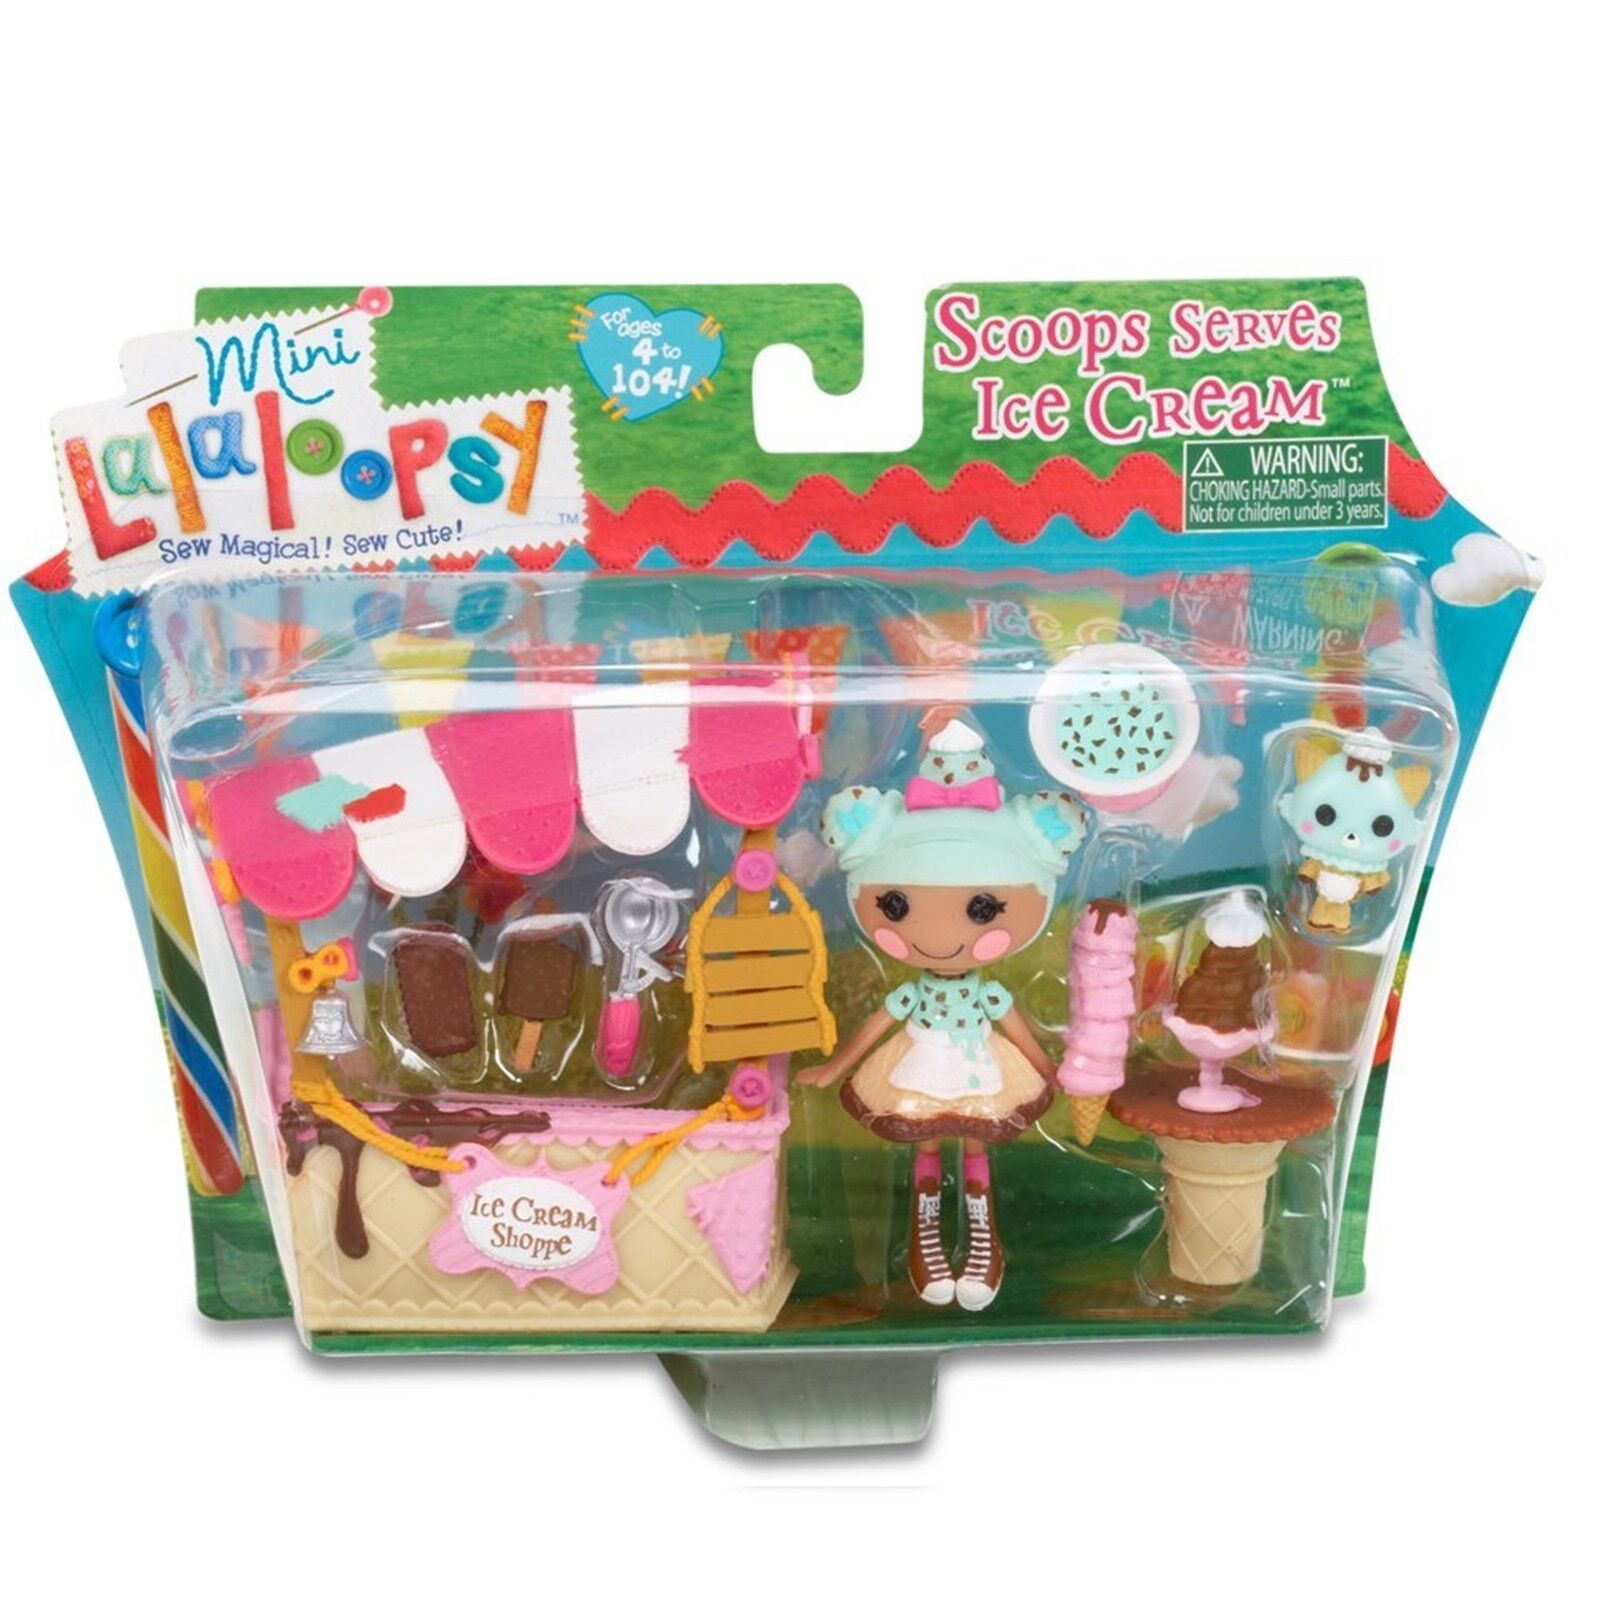 LALALOOPSY MINI SCOOPS SERVES ICE CREAM PLAYSET. BRAND NEW